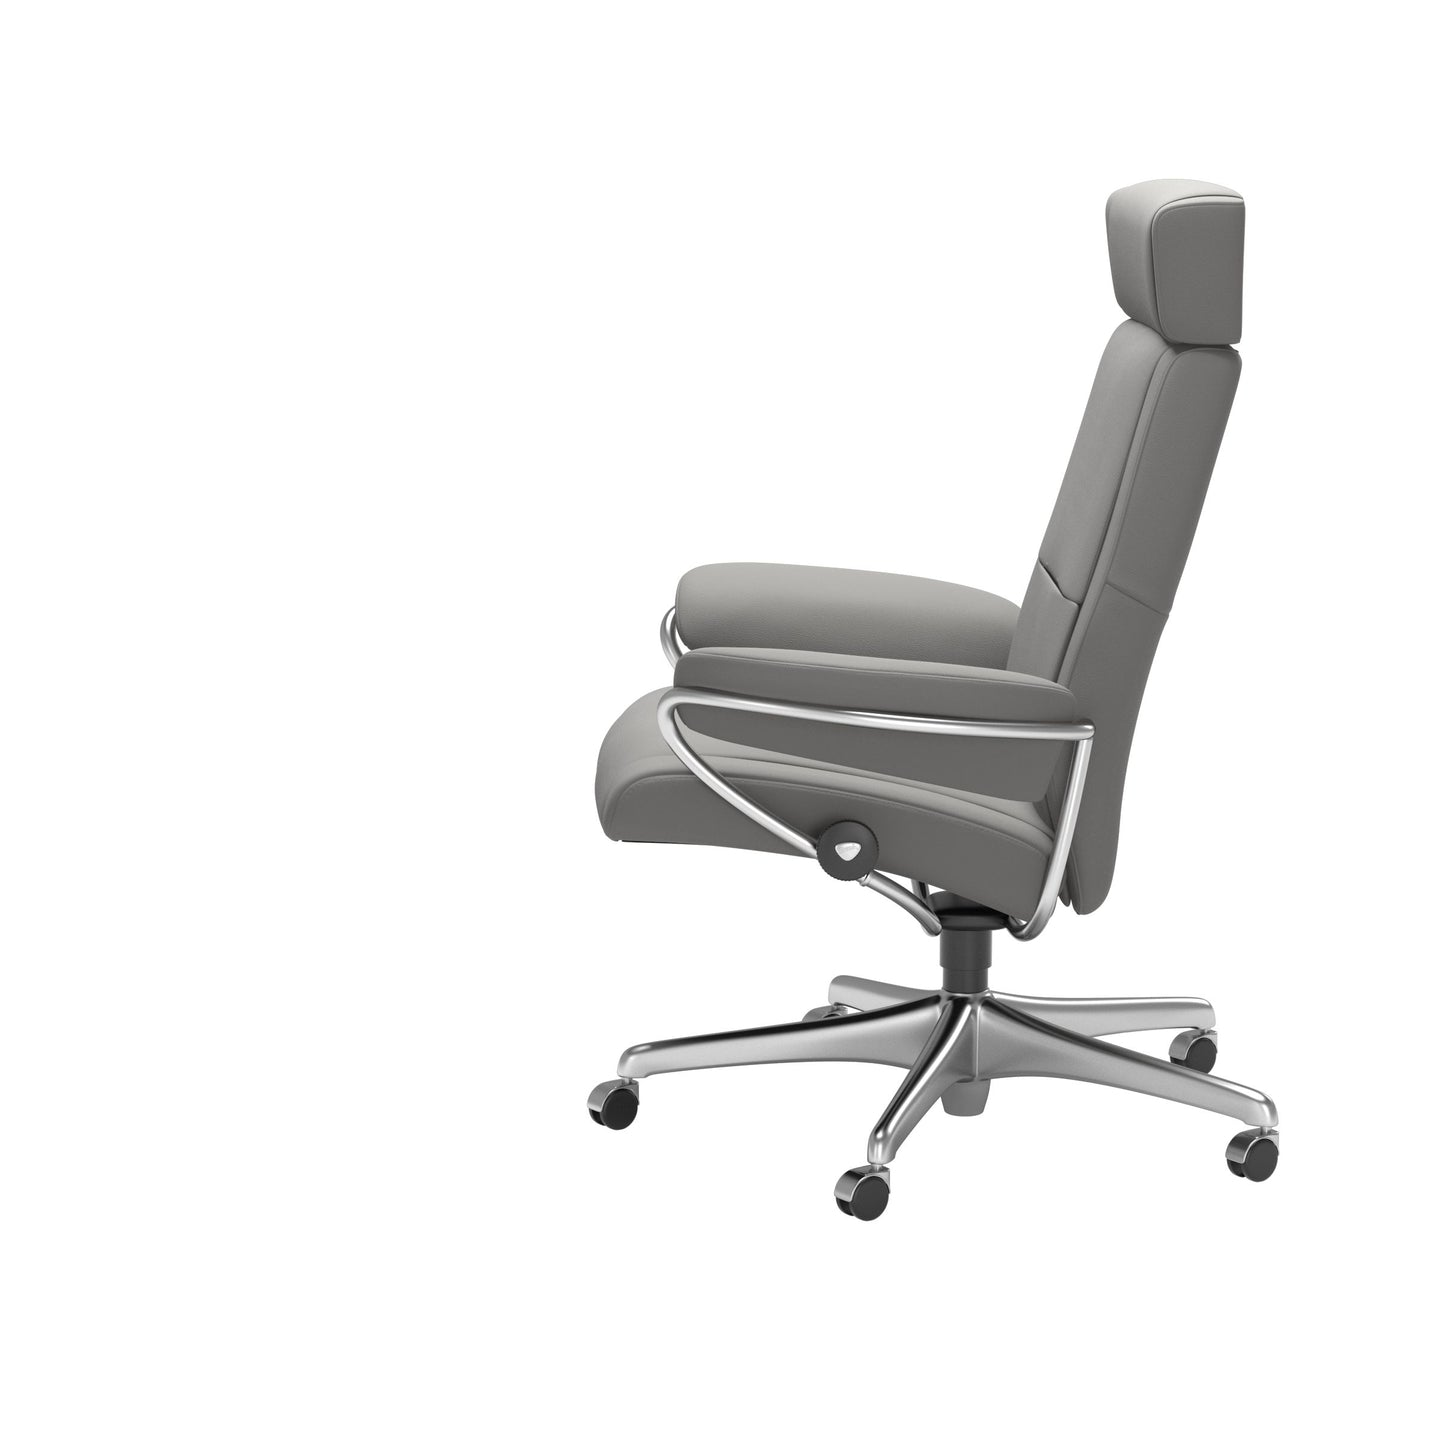 Stressless® Paris Office with adjustable headrest